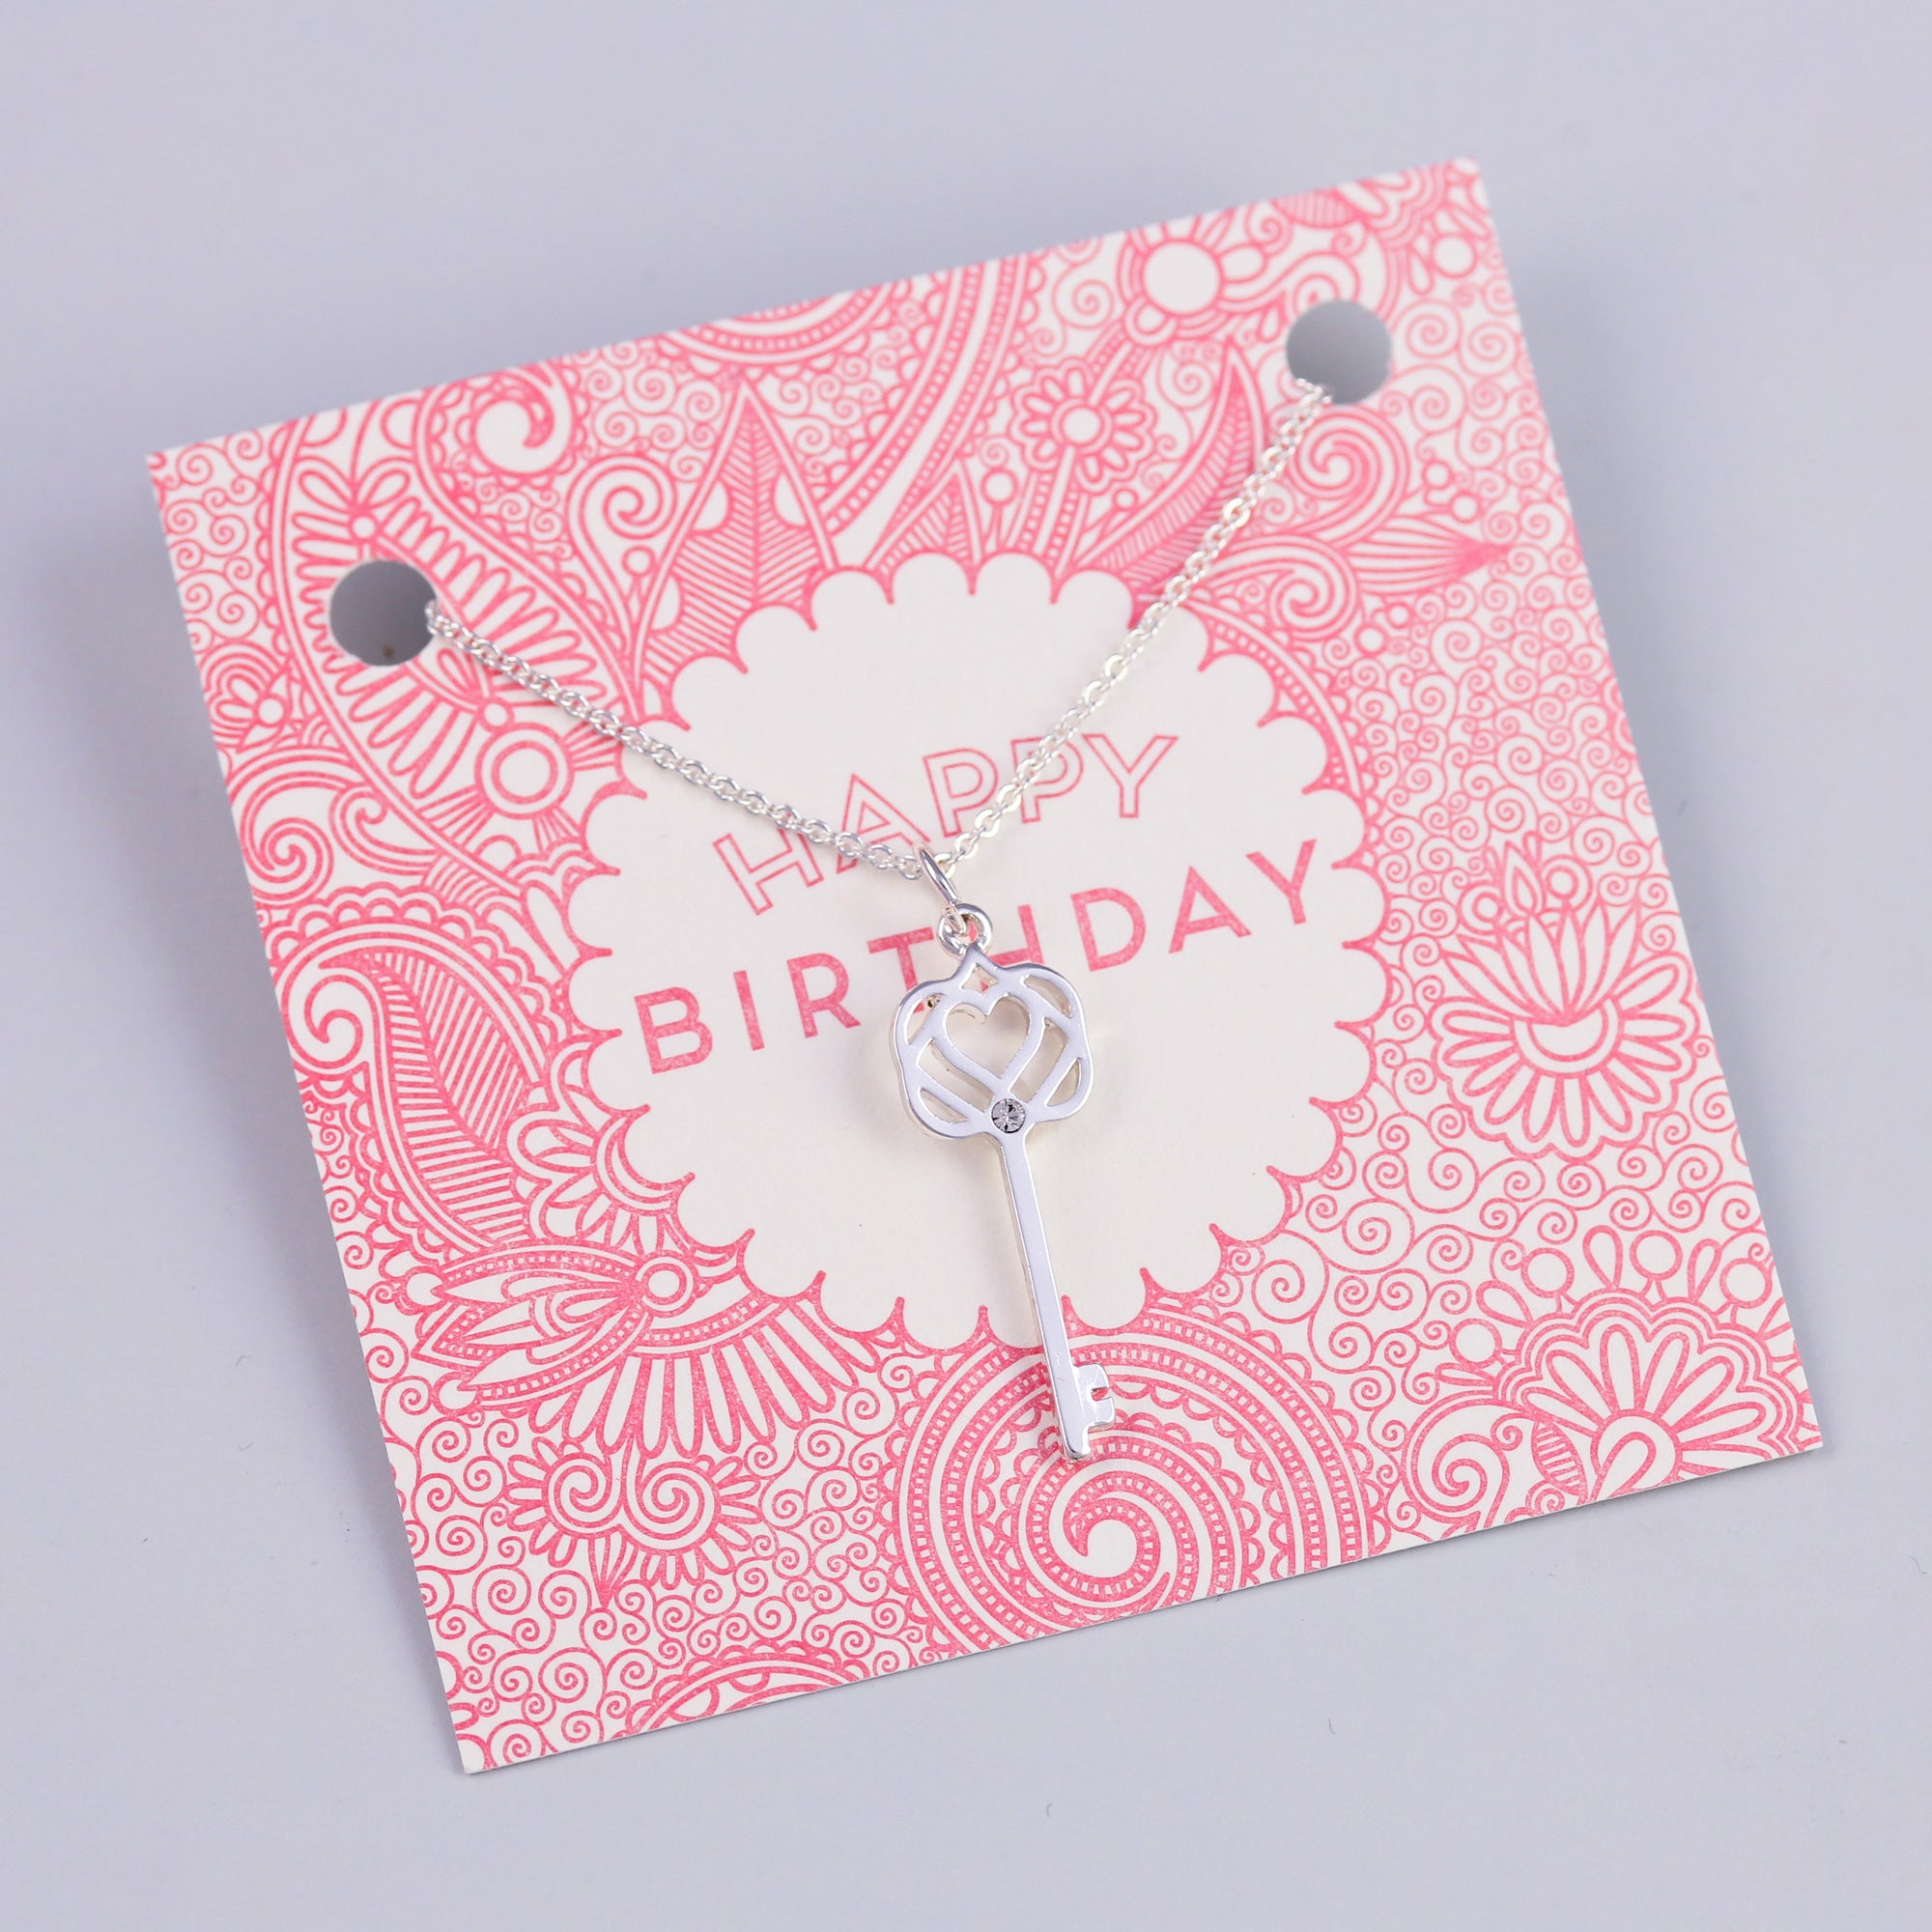 Happy Birthday Sentiment Card with Silver Key Necklace